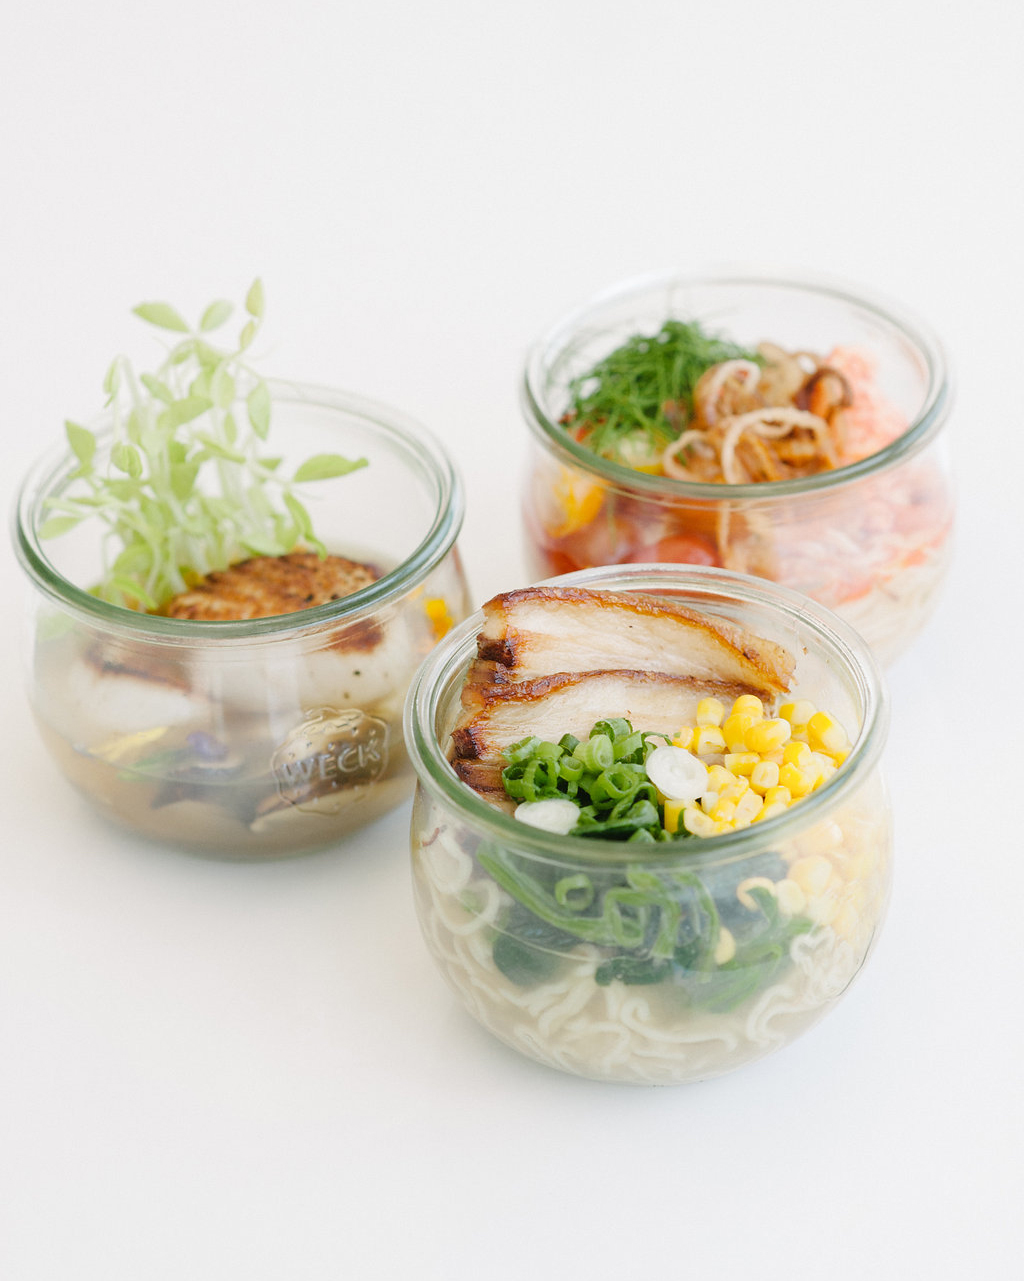 food-trends-personalized-stations-with-mini-bites-0116.jpg